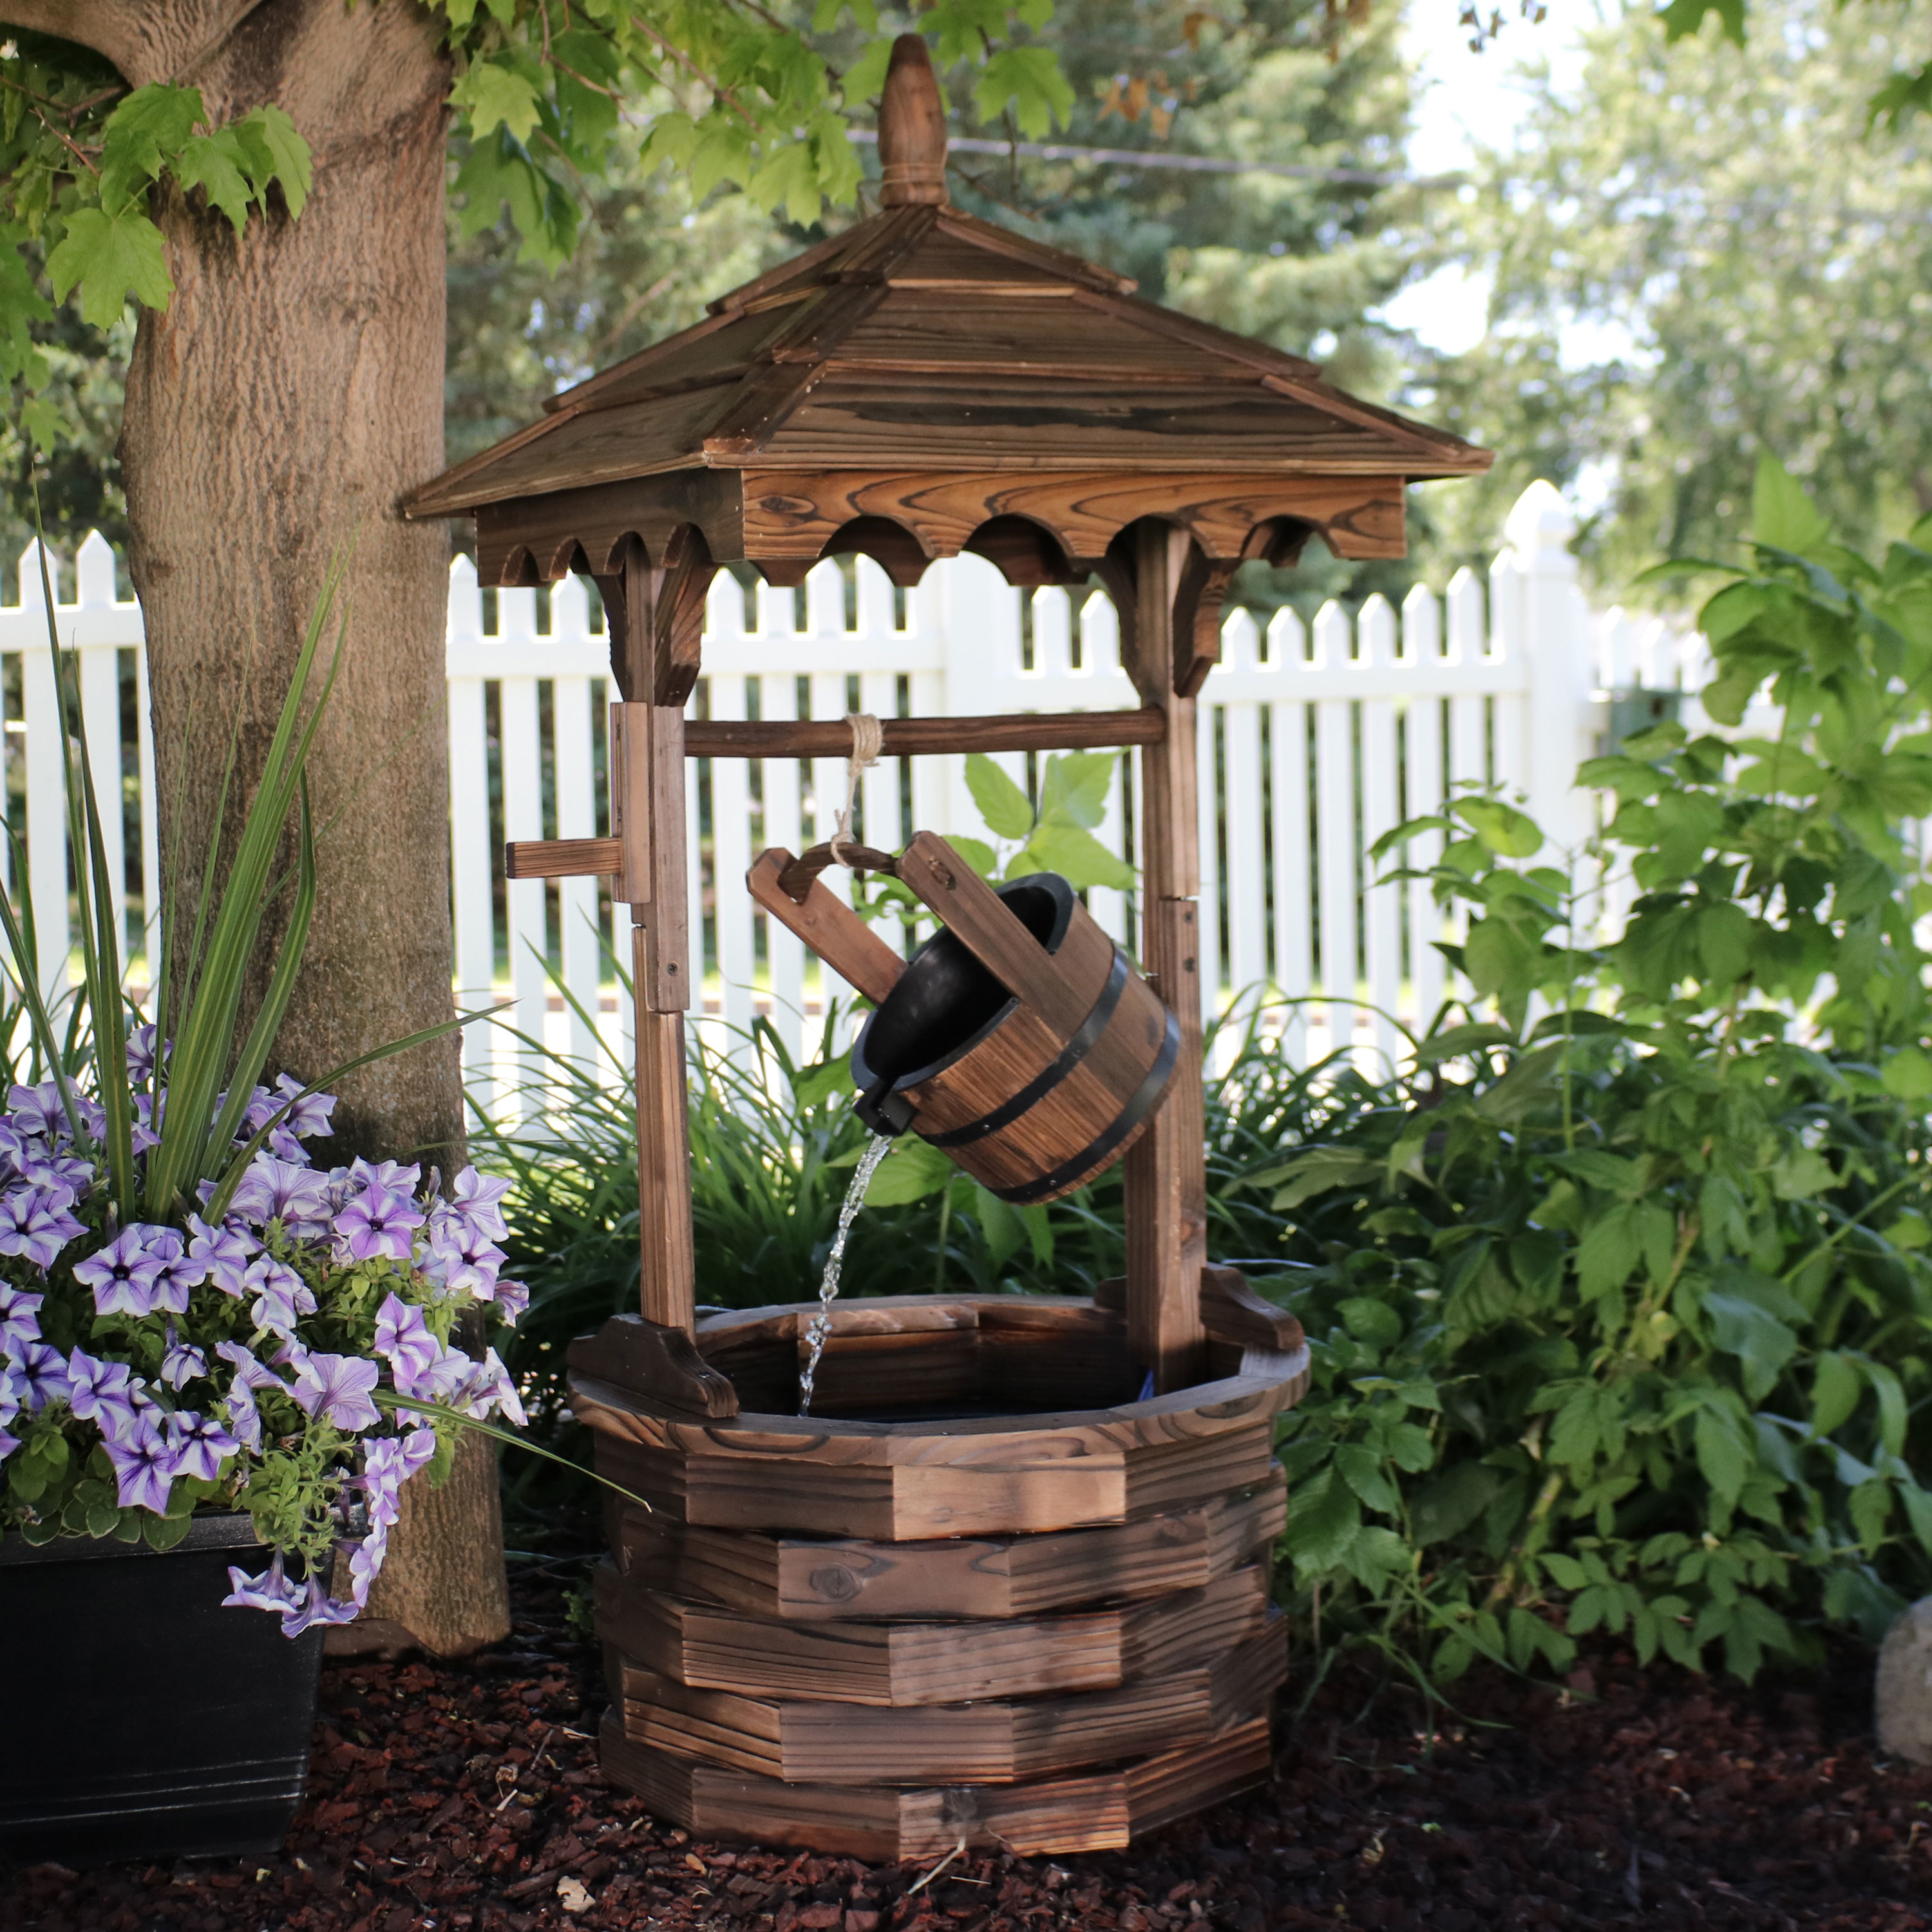 The Sunnydaze Old-fashioned Wood Wishing Well Water Fountain with Liner in a backyard garden